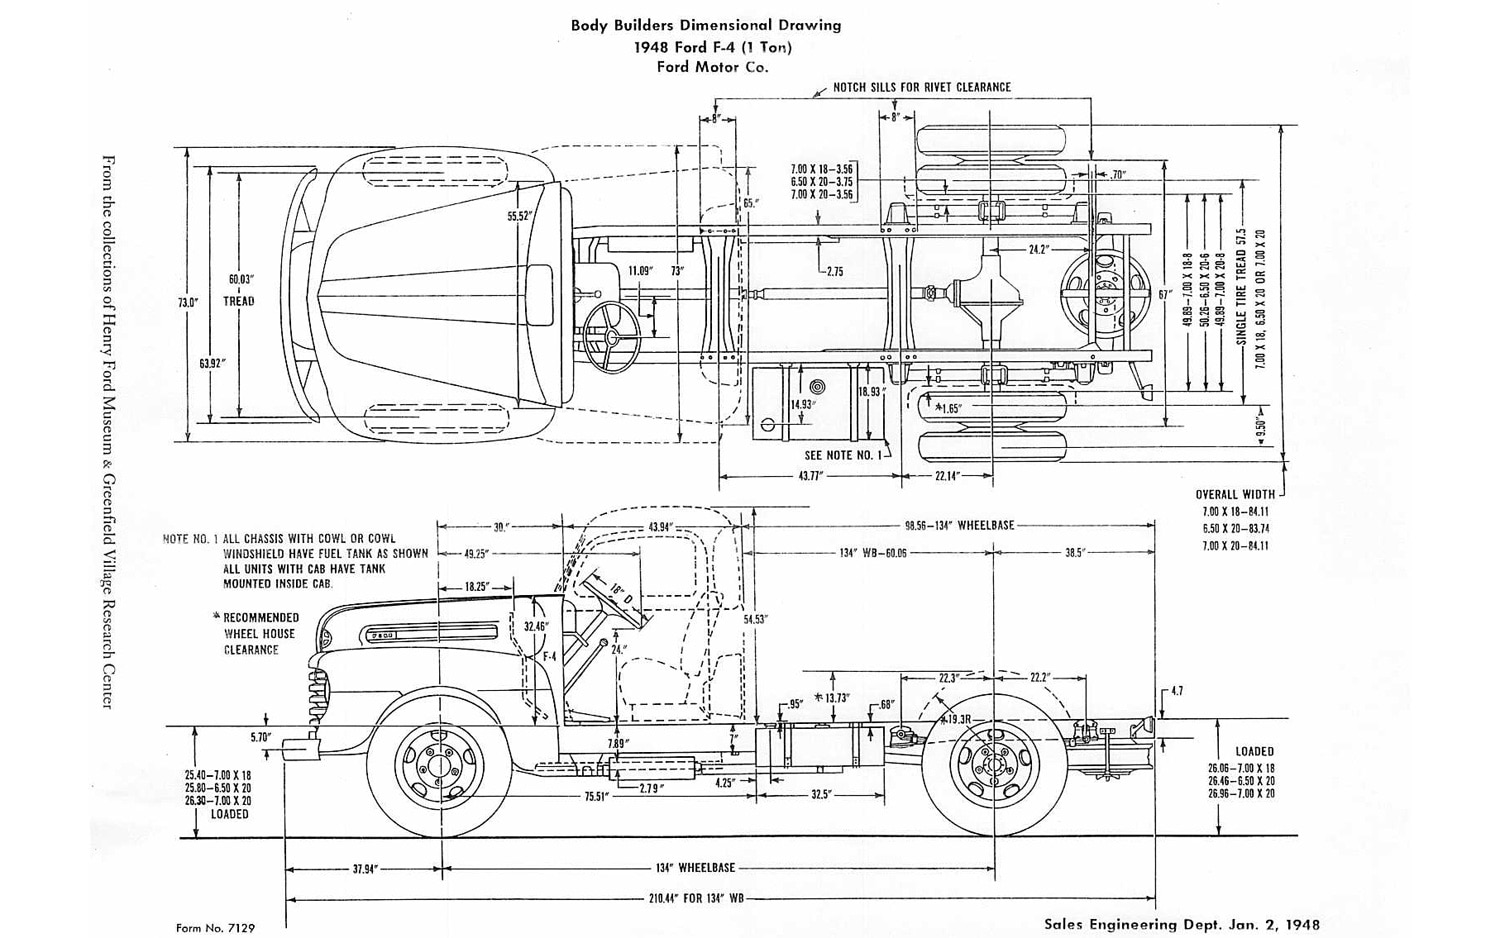 in 1942 ford tractor wiring diagram on this day in 1948 original    ford    f 1 pickup truck launched  on this day in 1948 original    ford    f 1 pickup truck launched